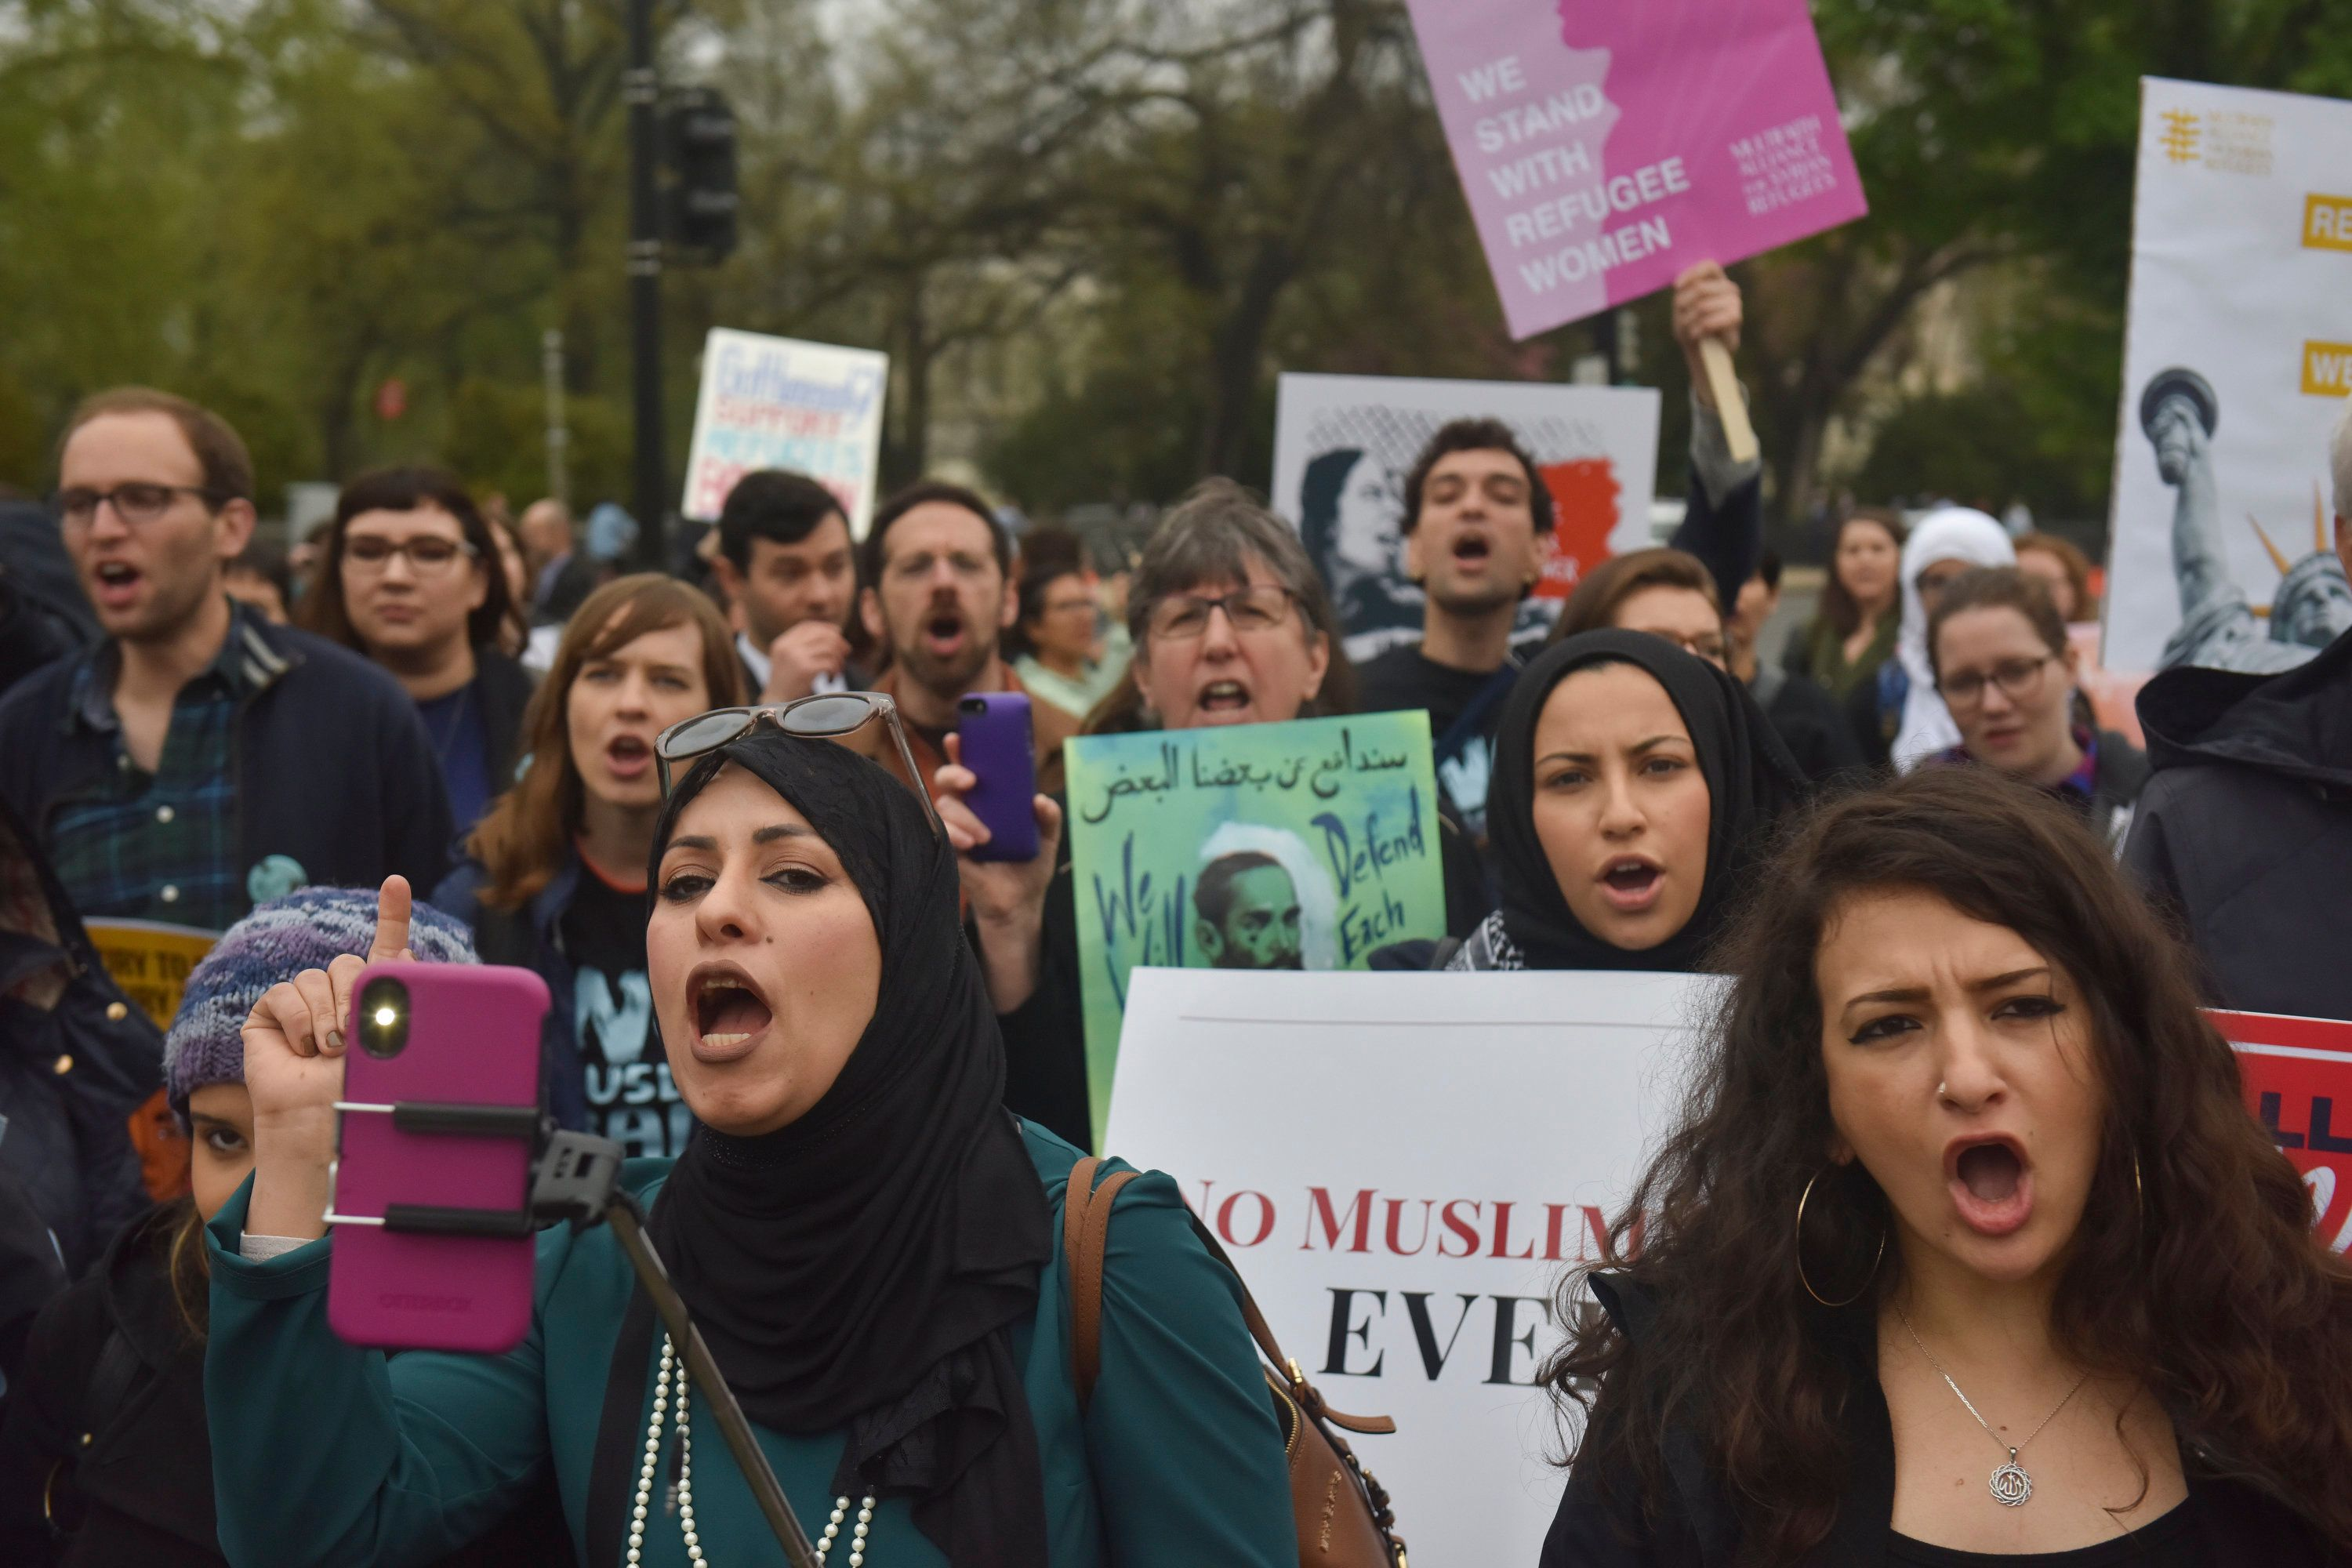 Trump won't apologize for harsh rhetoric aimed at Muslims